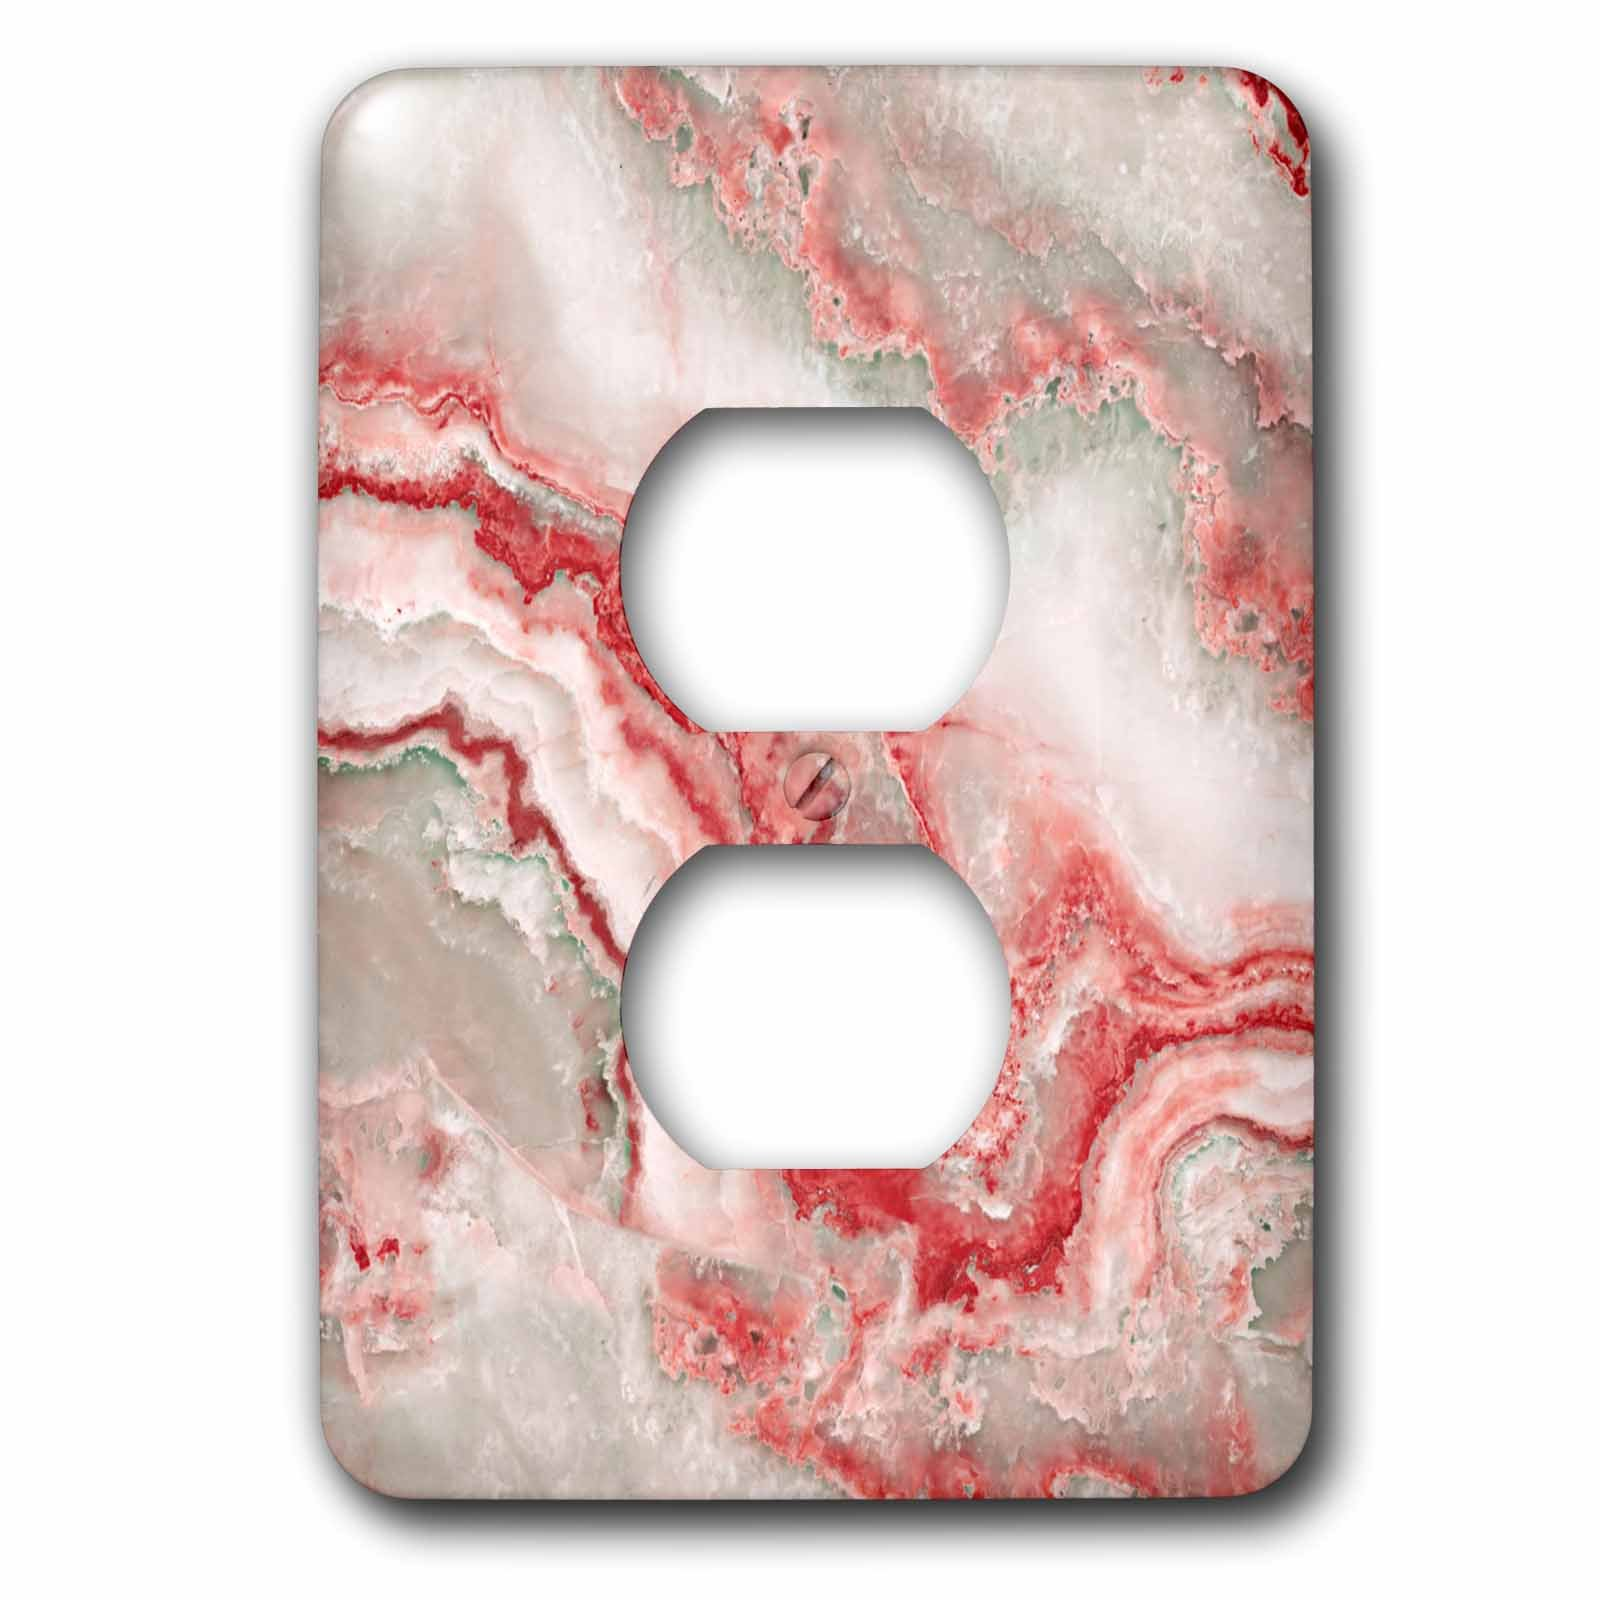 3dRose Uta Naumann Faux Glitter Pattern - Image of Trendy Luxury Orange Red Quartz and Gray Gemstone Agate Geode - Light Switch Covers - 2 plug outlet cover (lsp_275125_6)